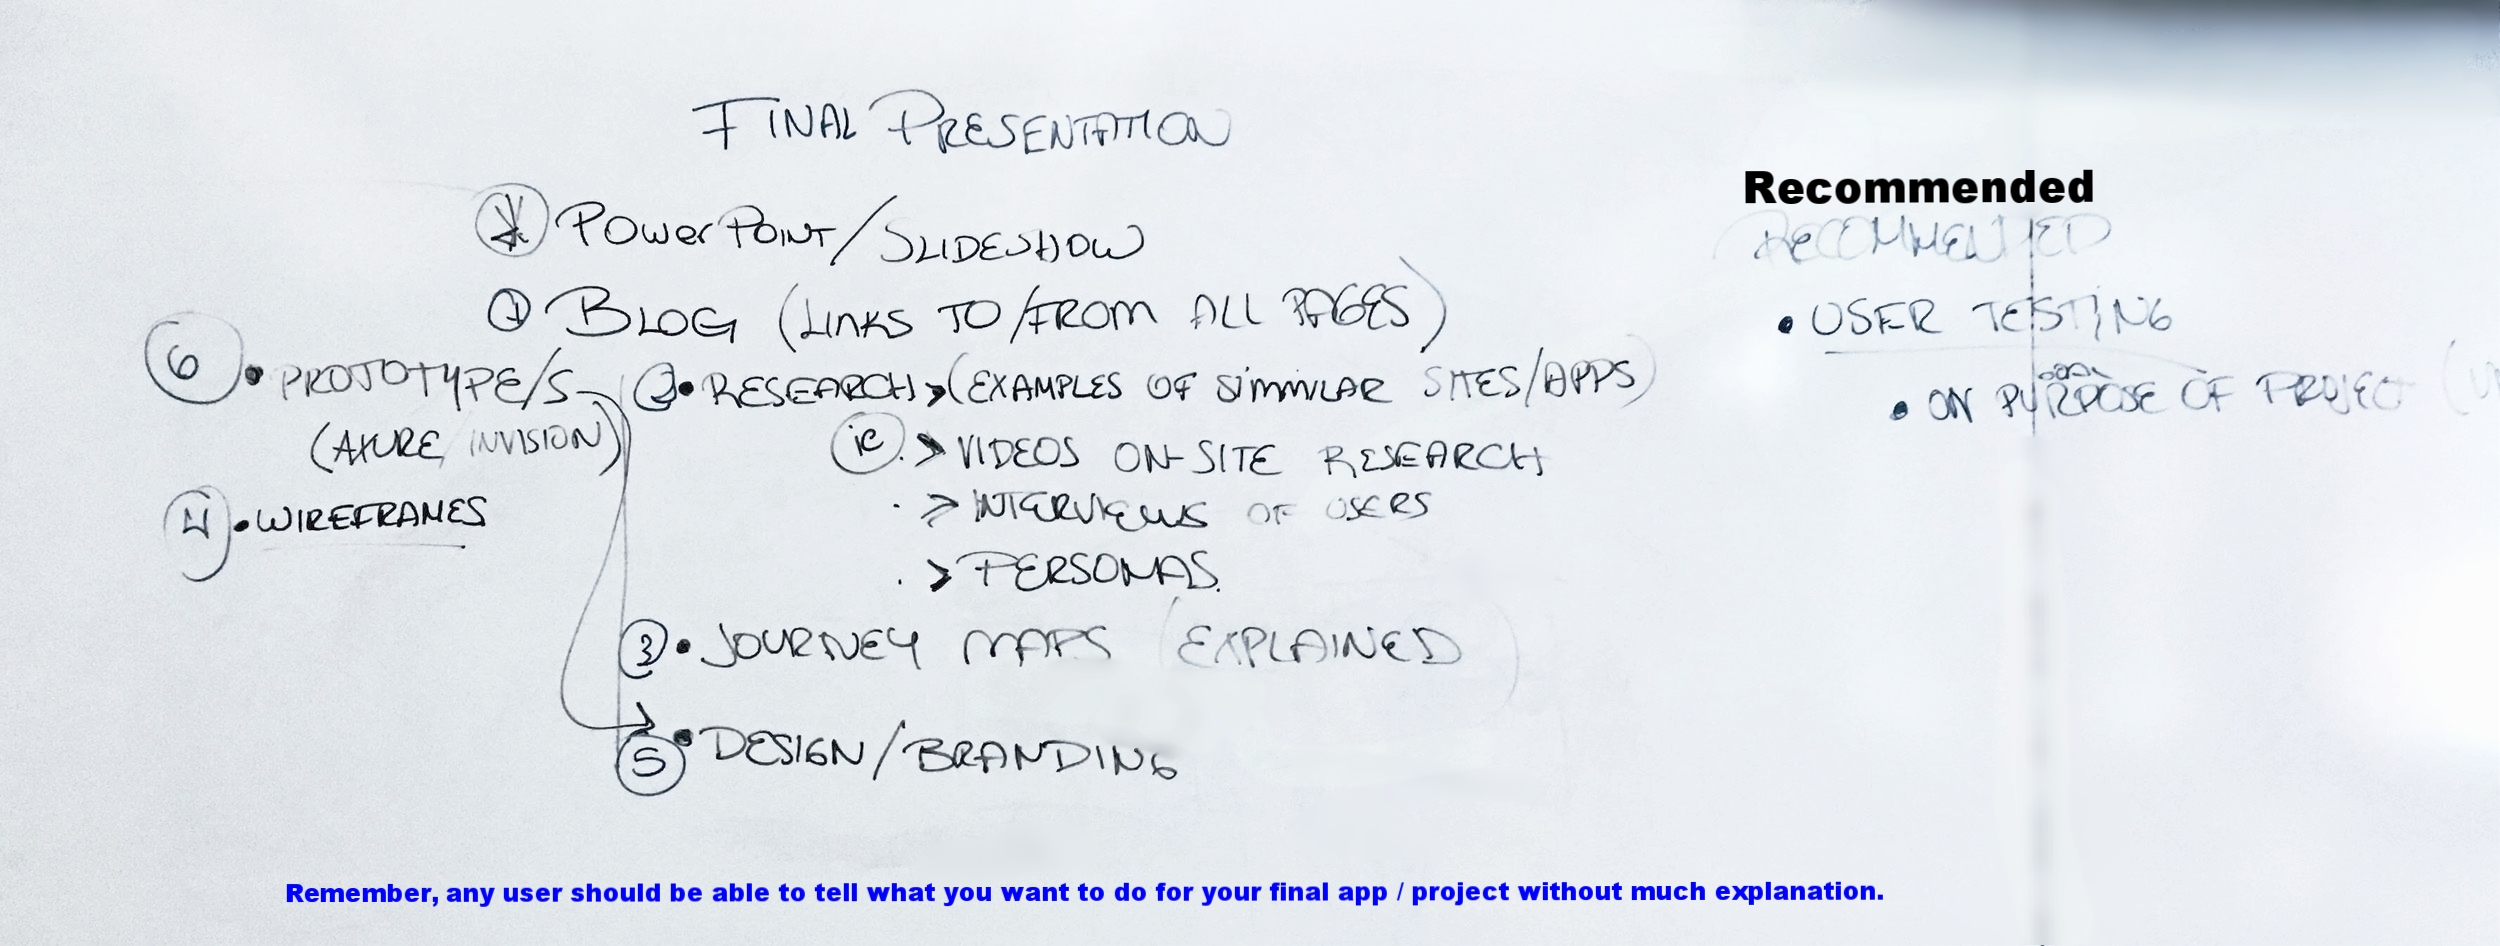 Classroom notes to assist you on what to work on for your final presentation - You should be able to jump back and forth from the Slide Show, to blog, to other links, like Axure, Invision, ETC